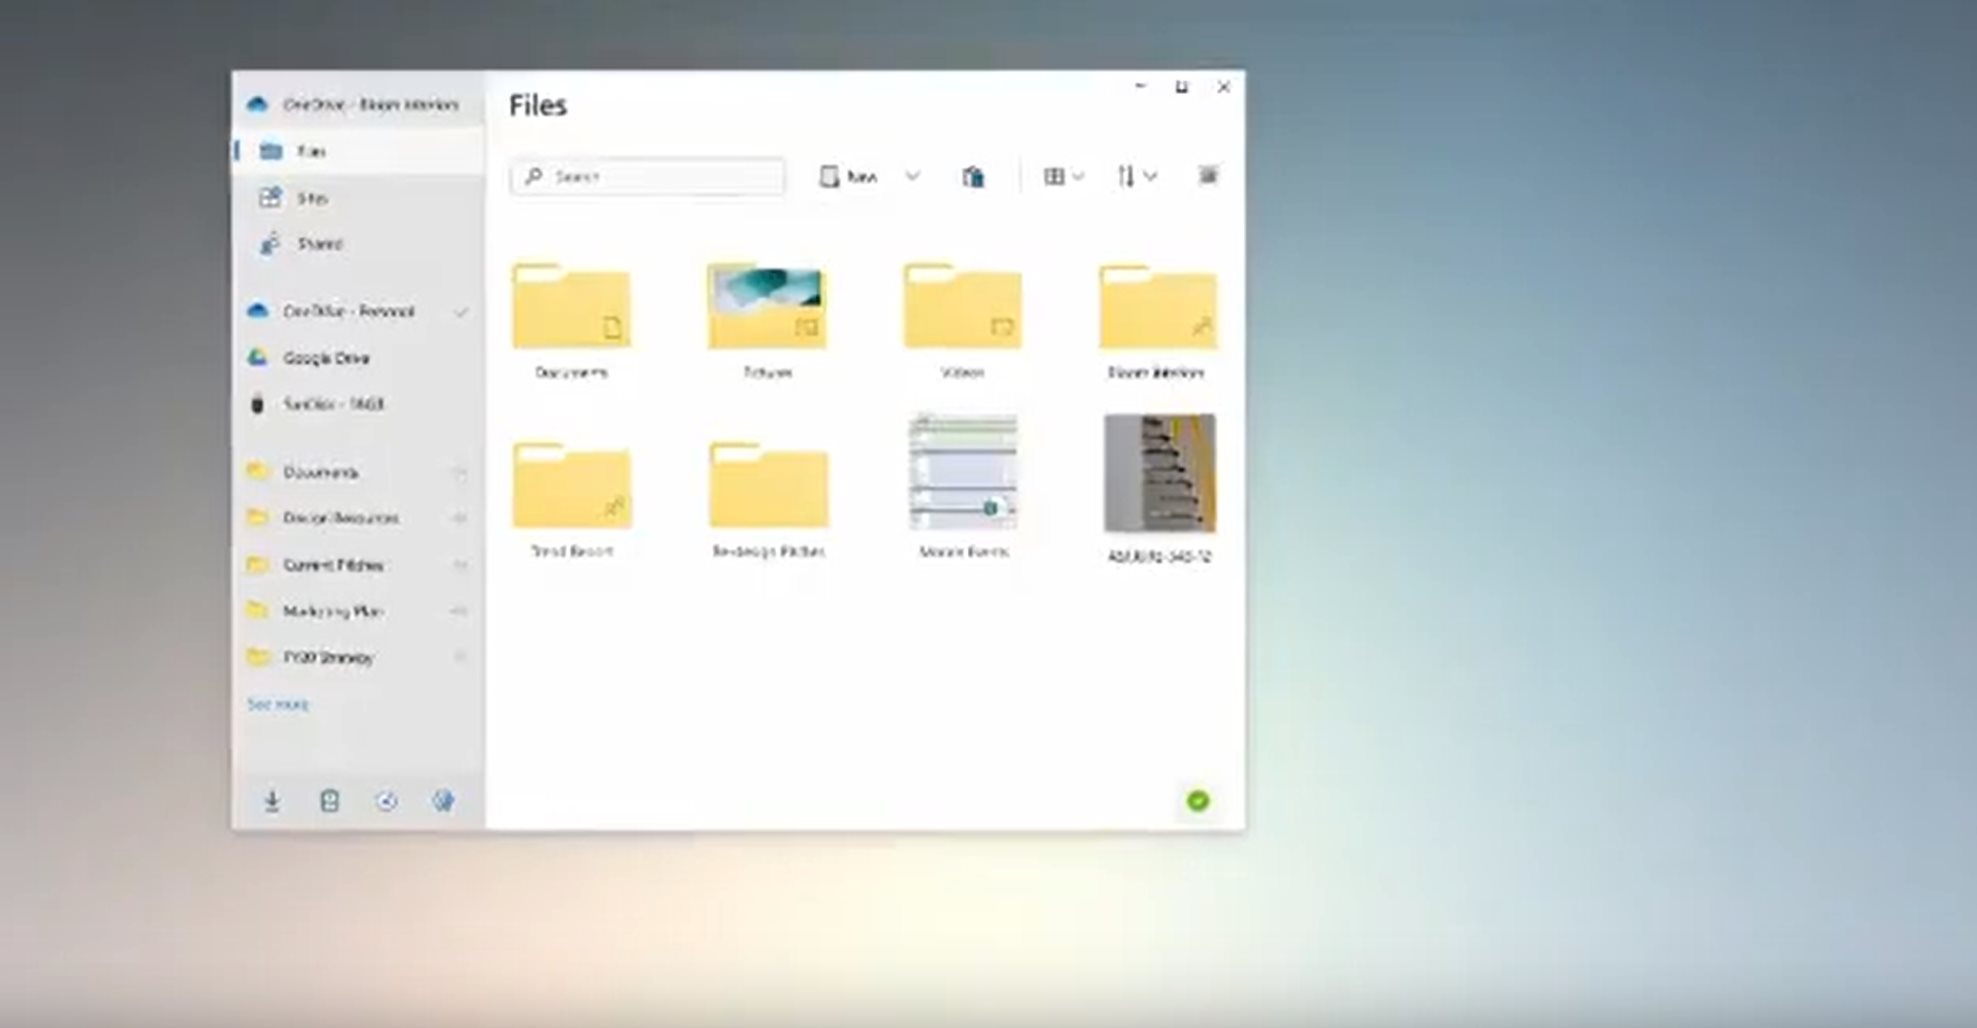 Microsoft Shares Sneak Peek of Upcoming Windows 10 Features